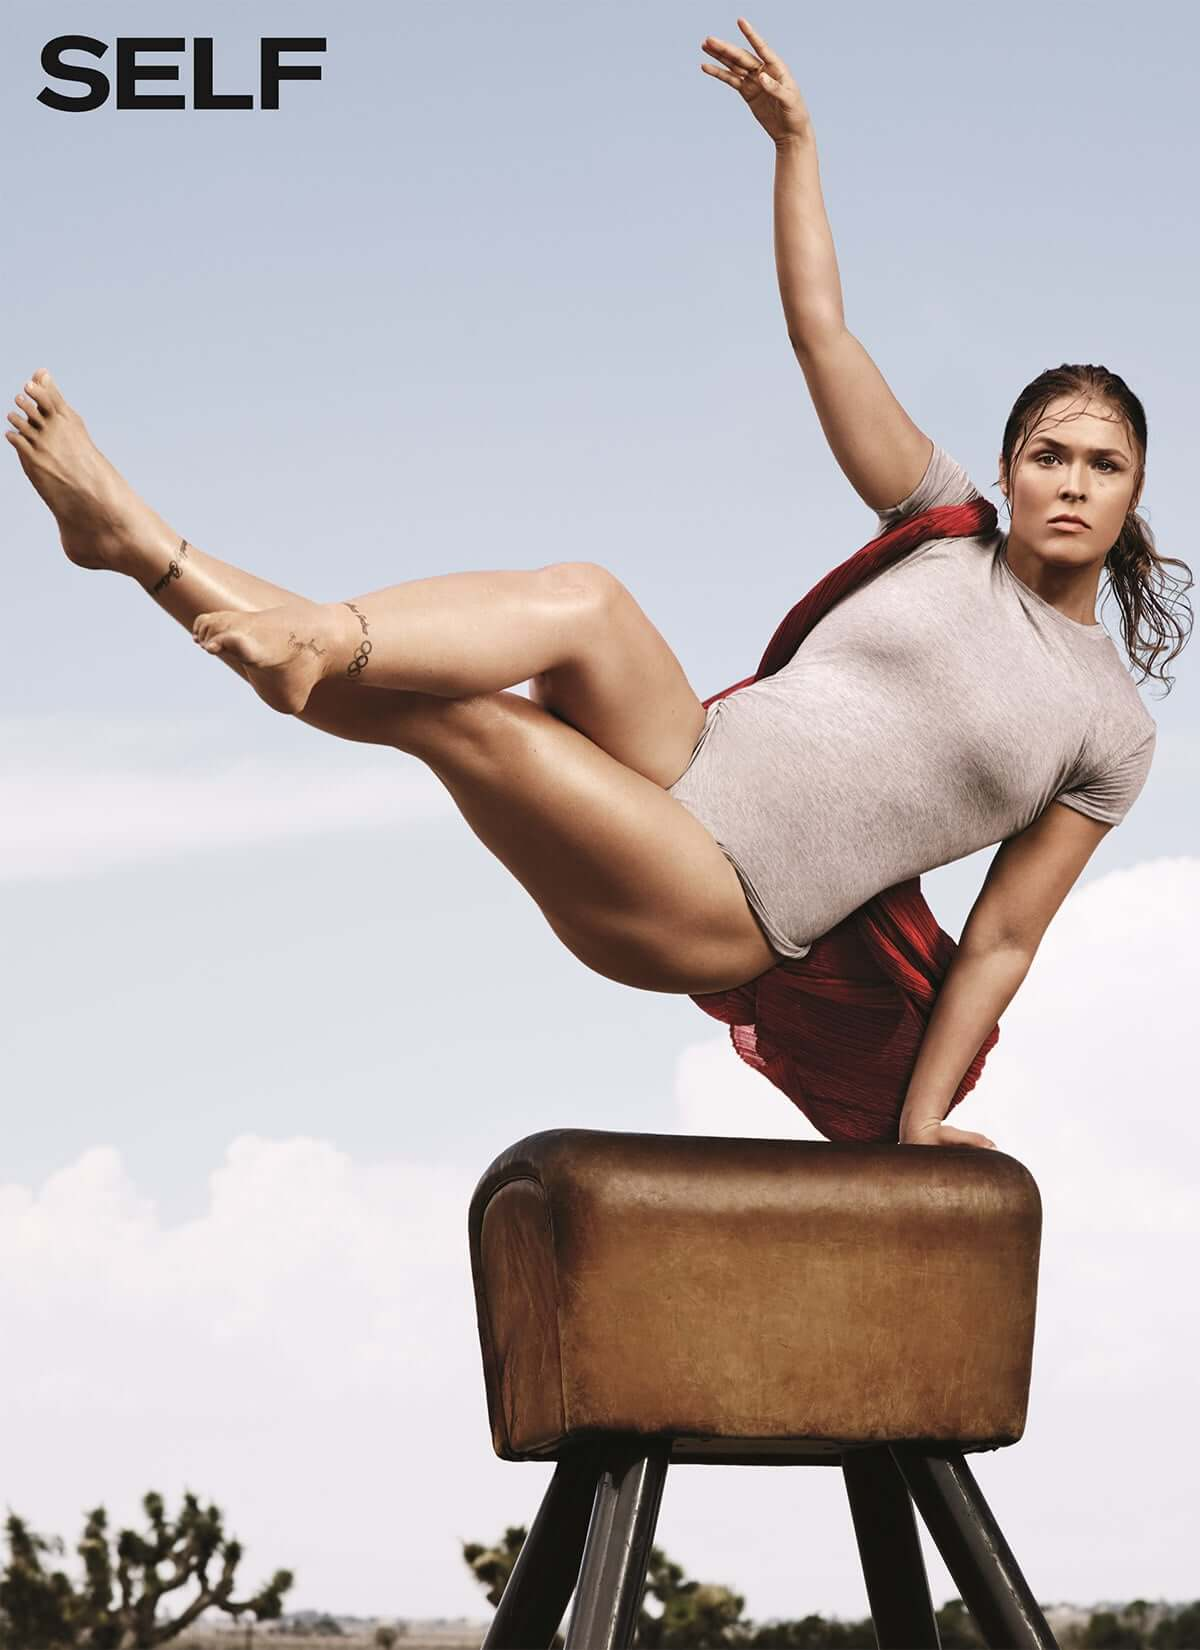 Ronda-Rousey-legs-awesome-pictures